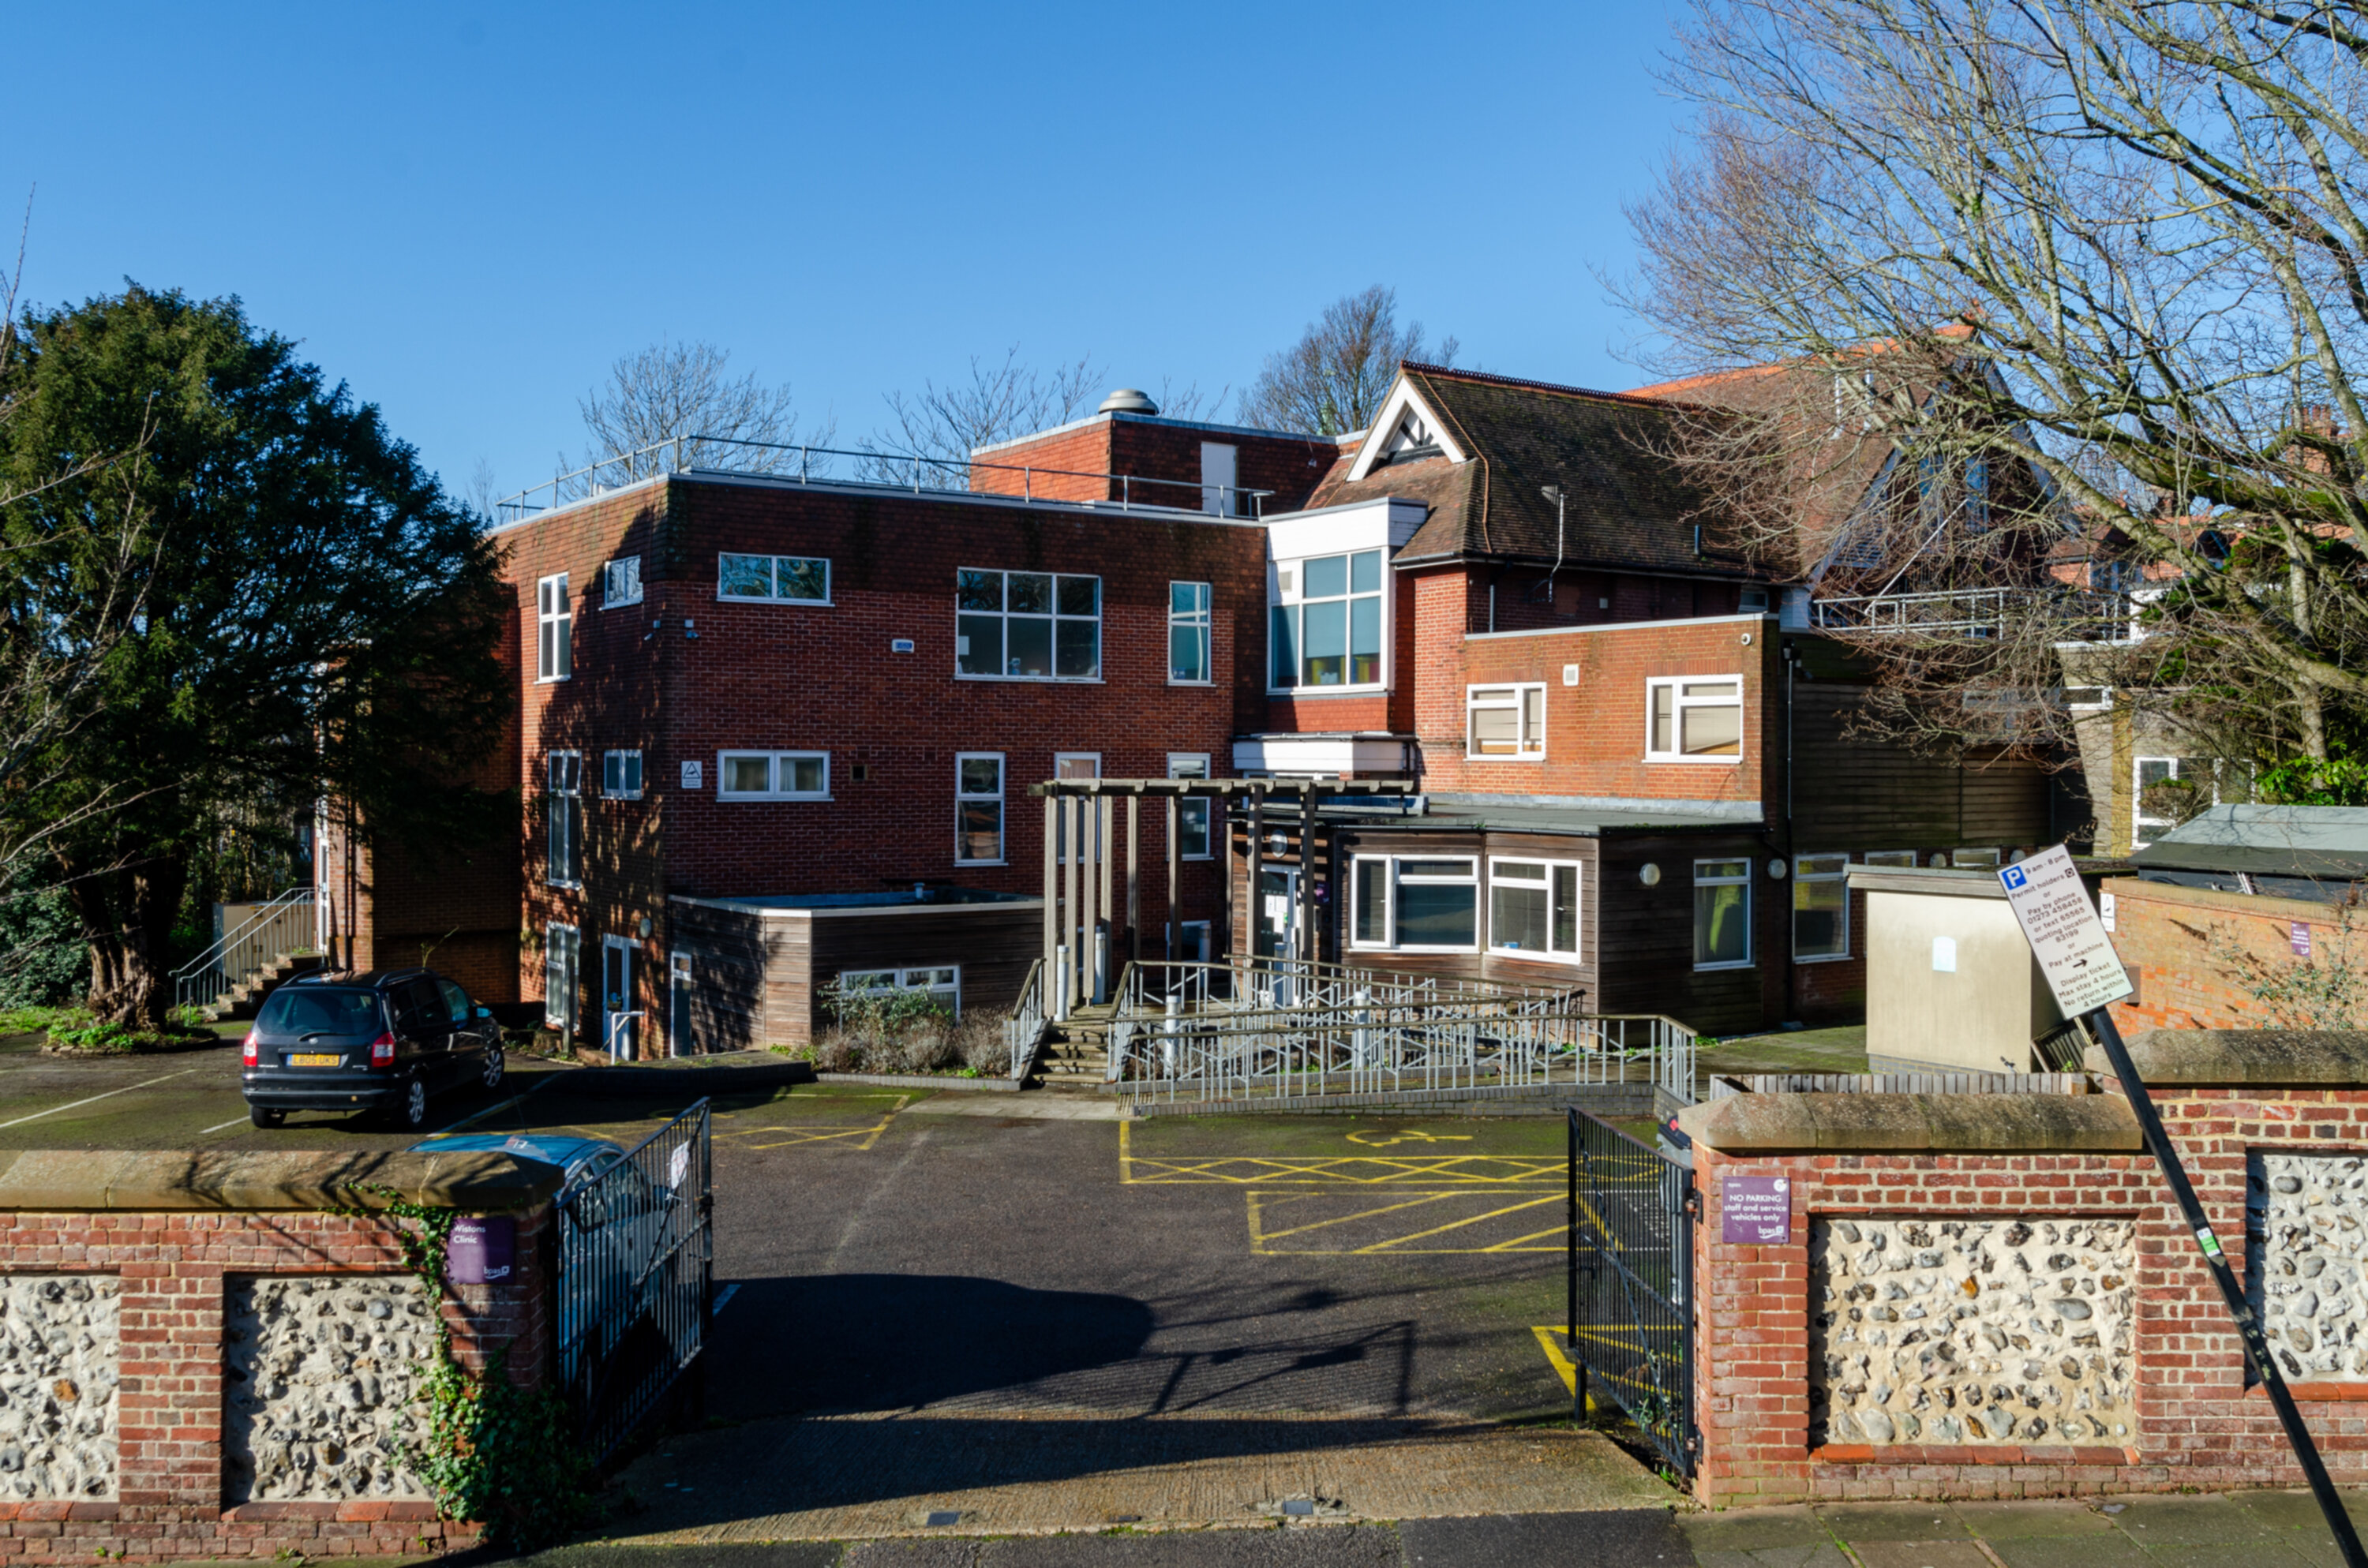 Image of 138 Dyke Road, Brighton, East Sussex, BN1 5PA